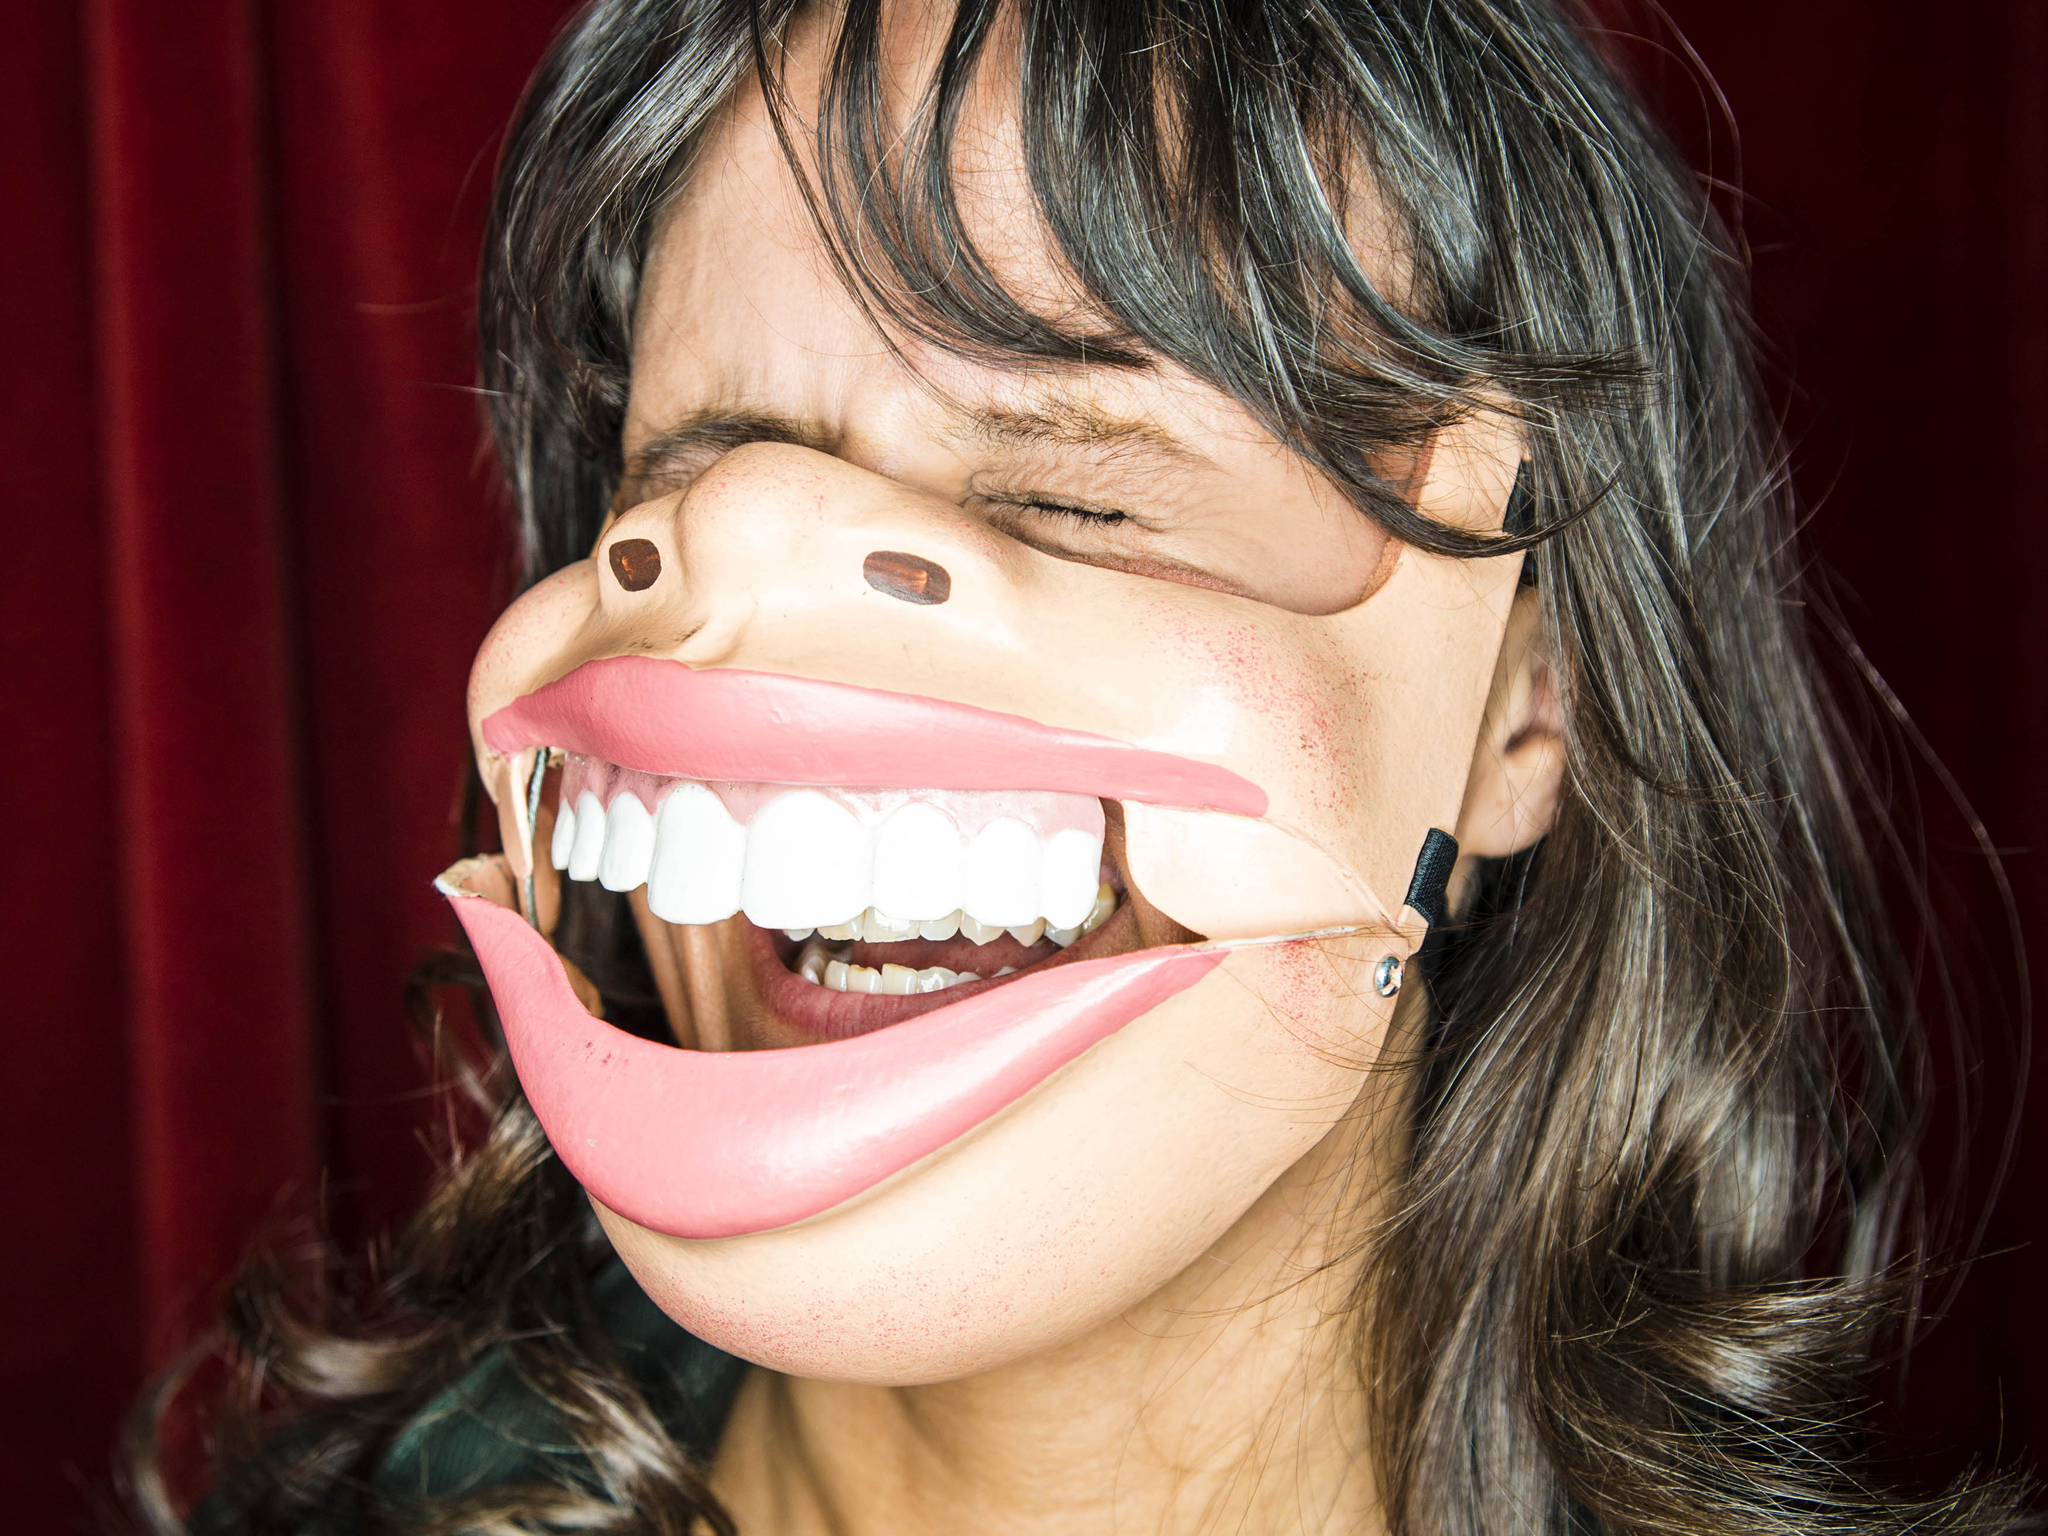 Nina Conti: In Your Face